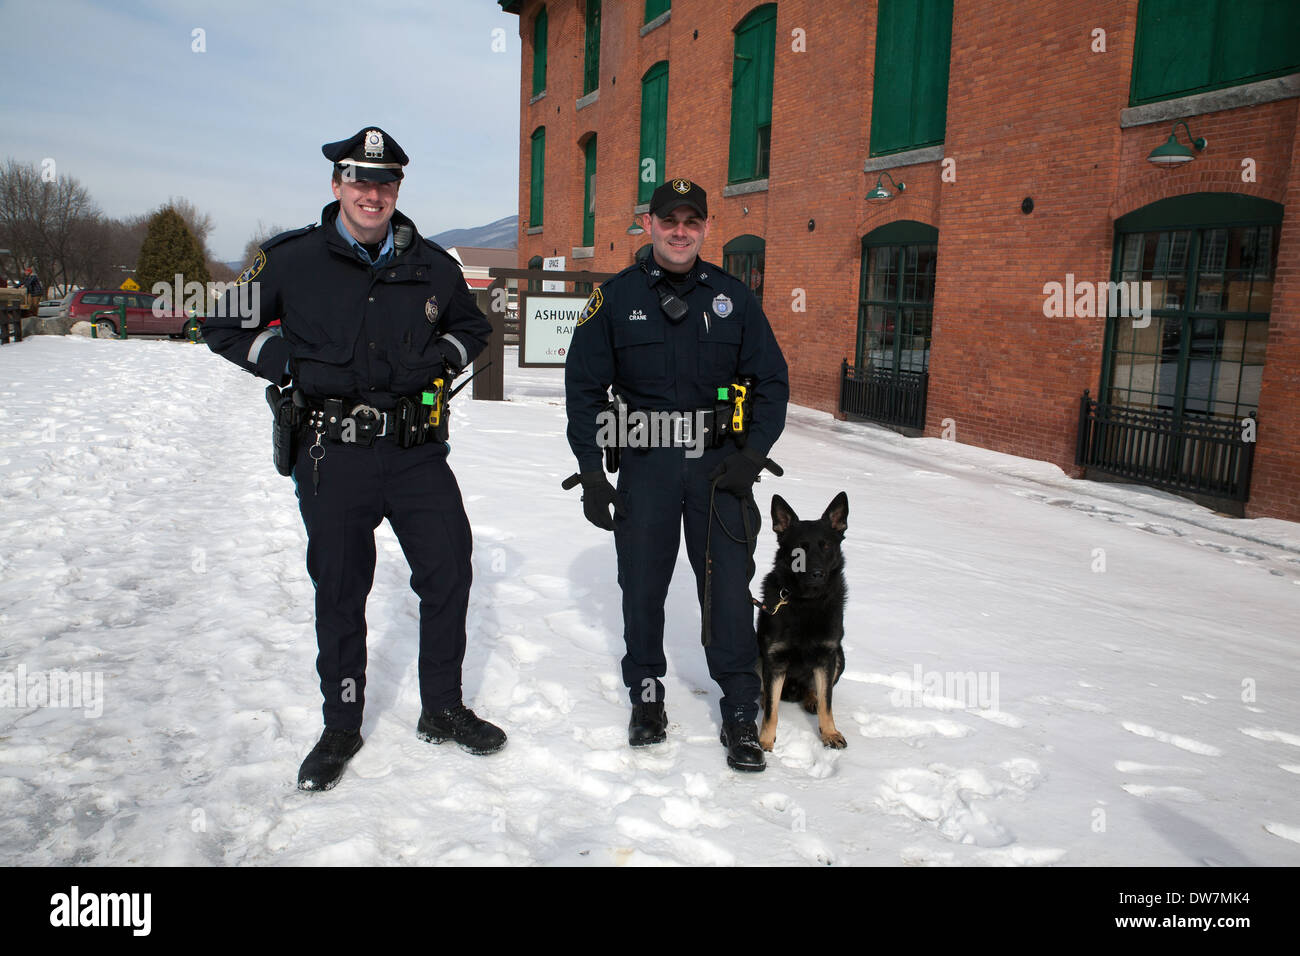 Two human police officers pose with the town's new dog police officer. - Stock Image